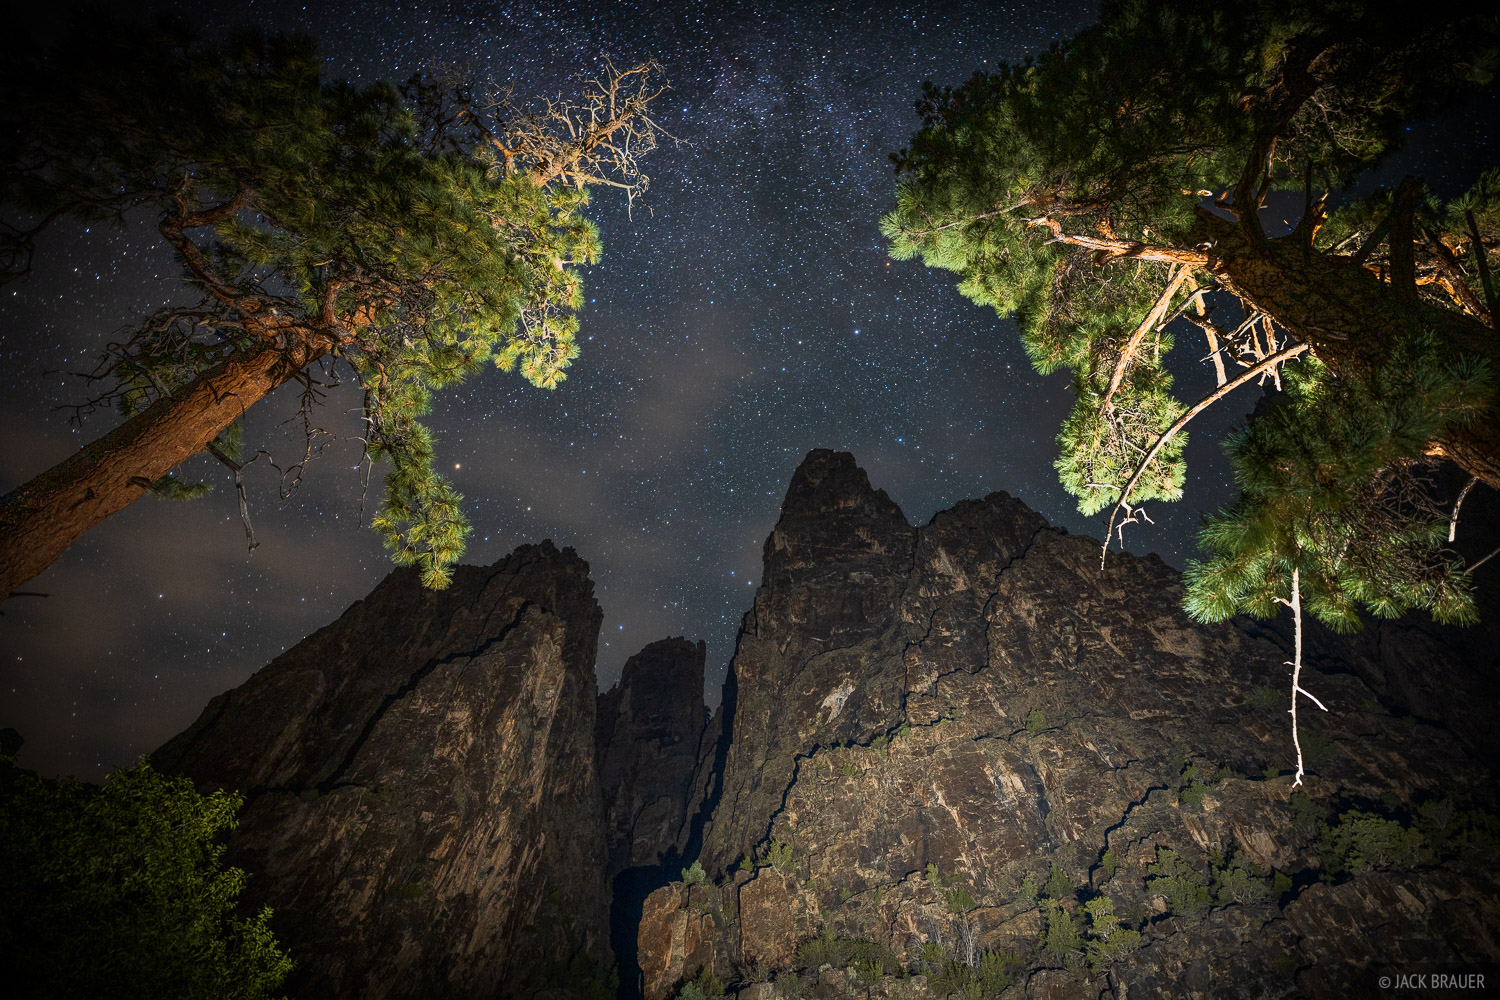 Looking straight up at the stars above giant ponderosa pines and the vertical walls of the Black Canyon, from alongside the Gunnison...